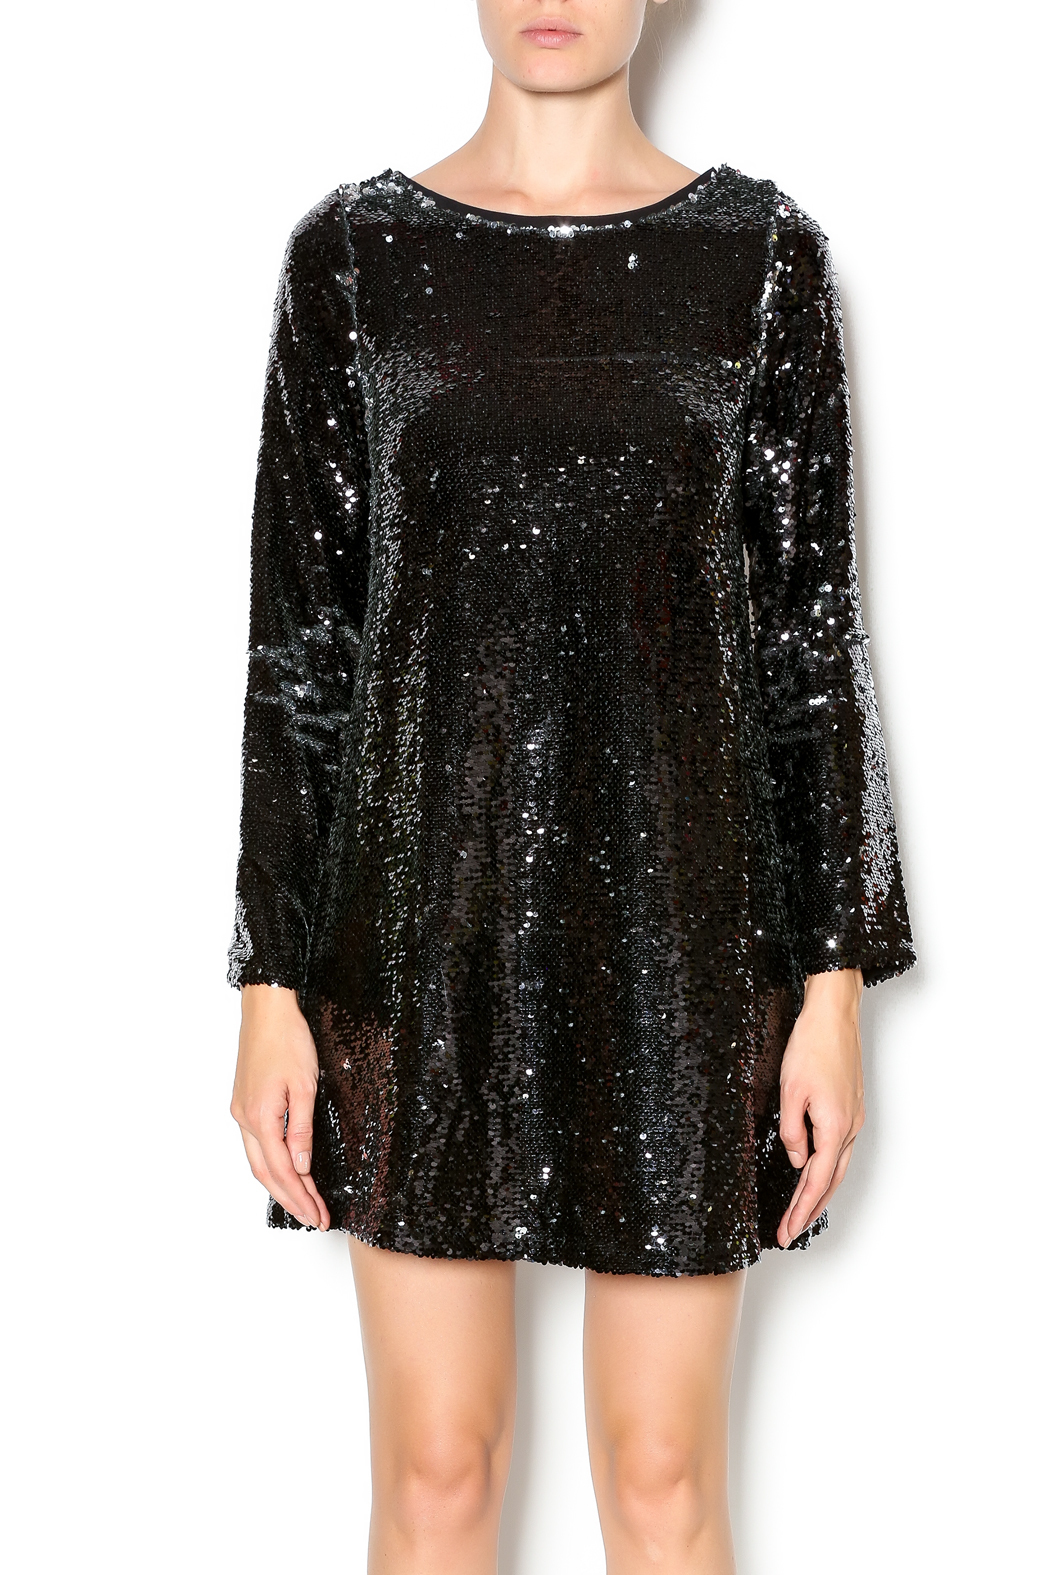 Double Zero Long Sleeve Sequin Dress from Naples by Petunias of Naples  Shoptiques